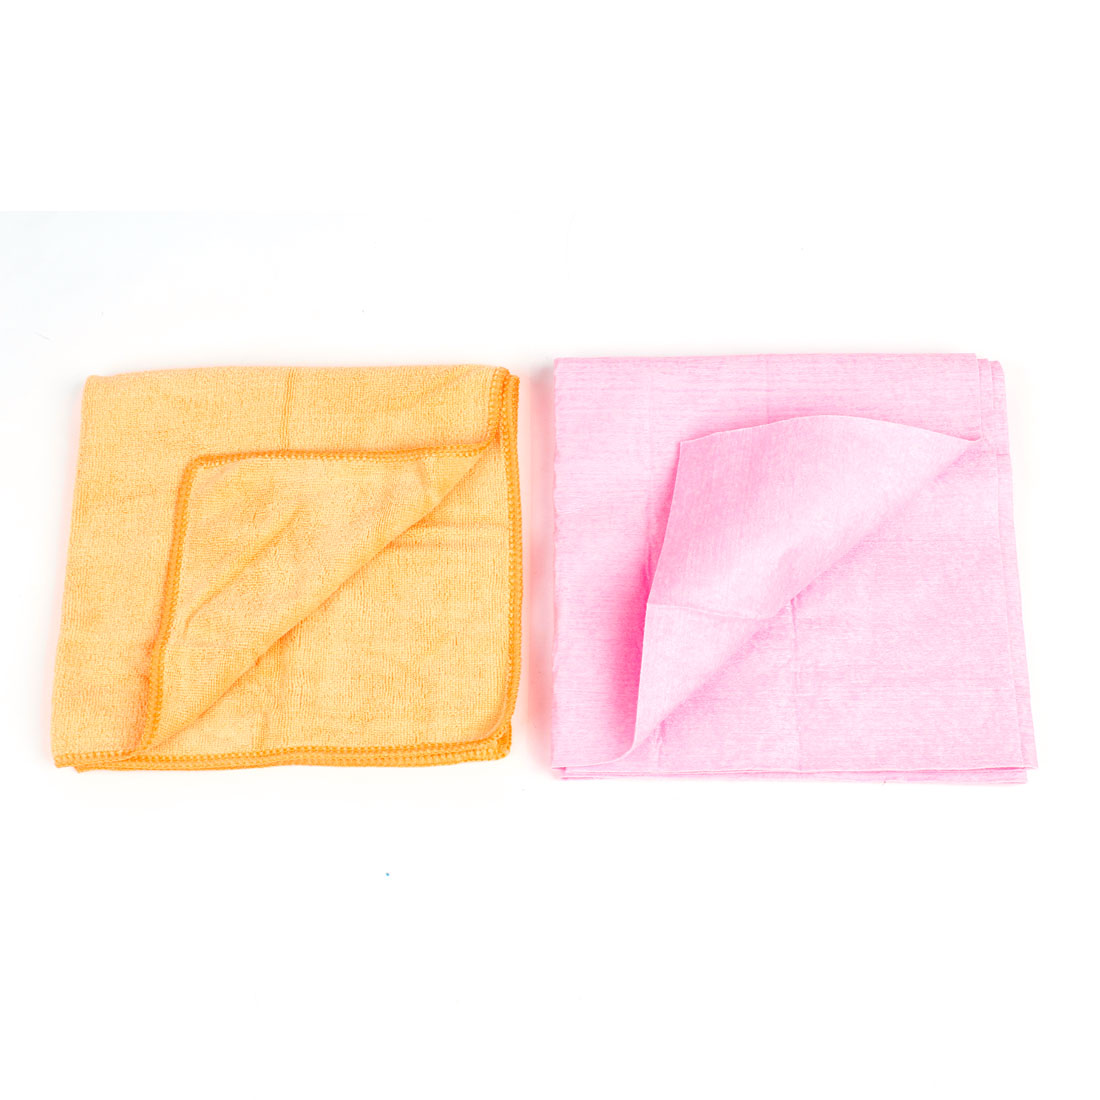 2 in 1 Car Washing Care Rectangle Pink Soft Cloth w Washing Towel Cleaner Orange